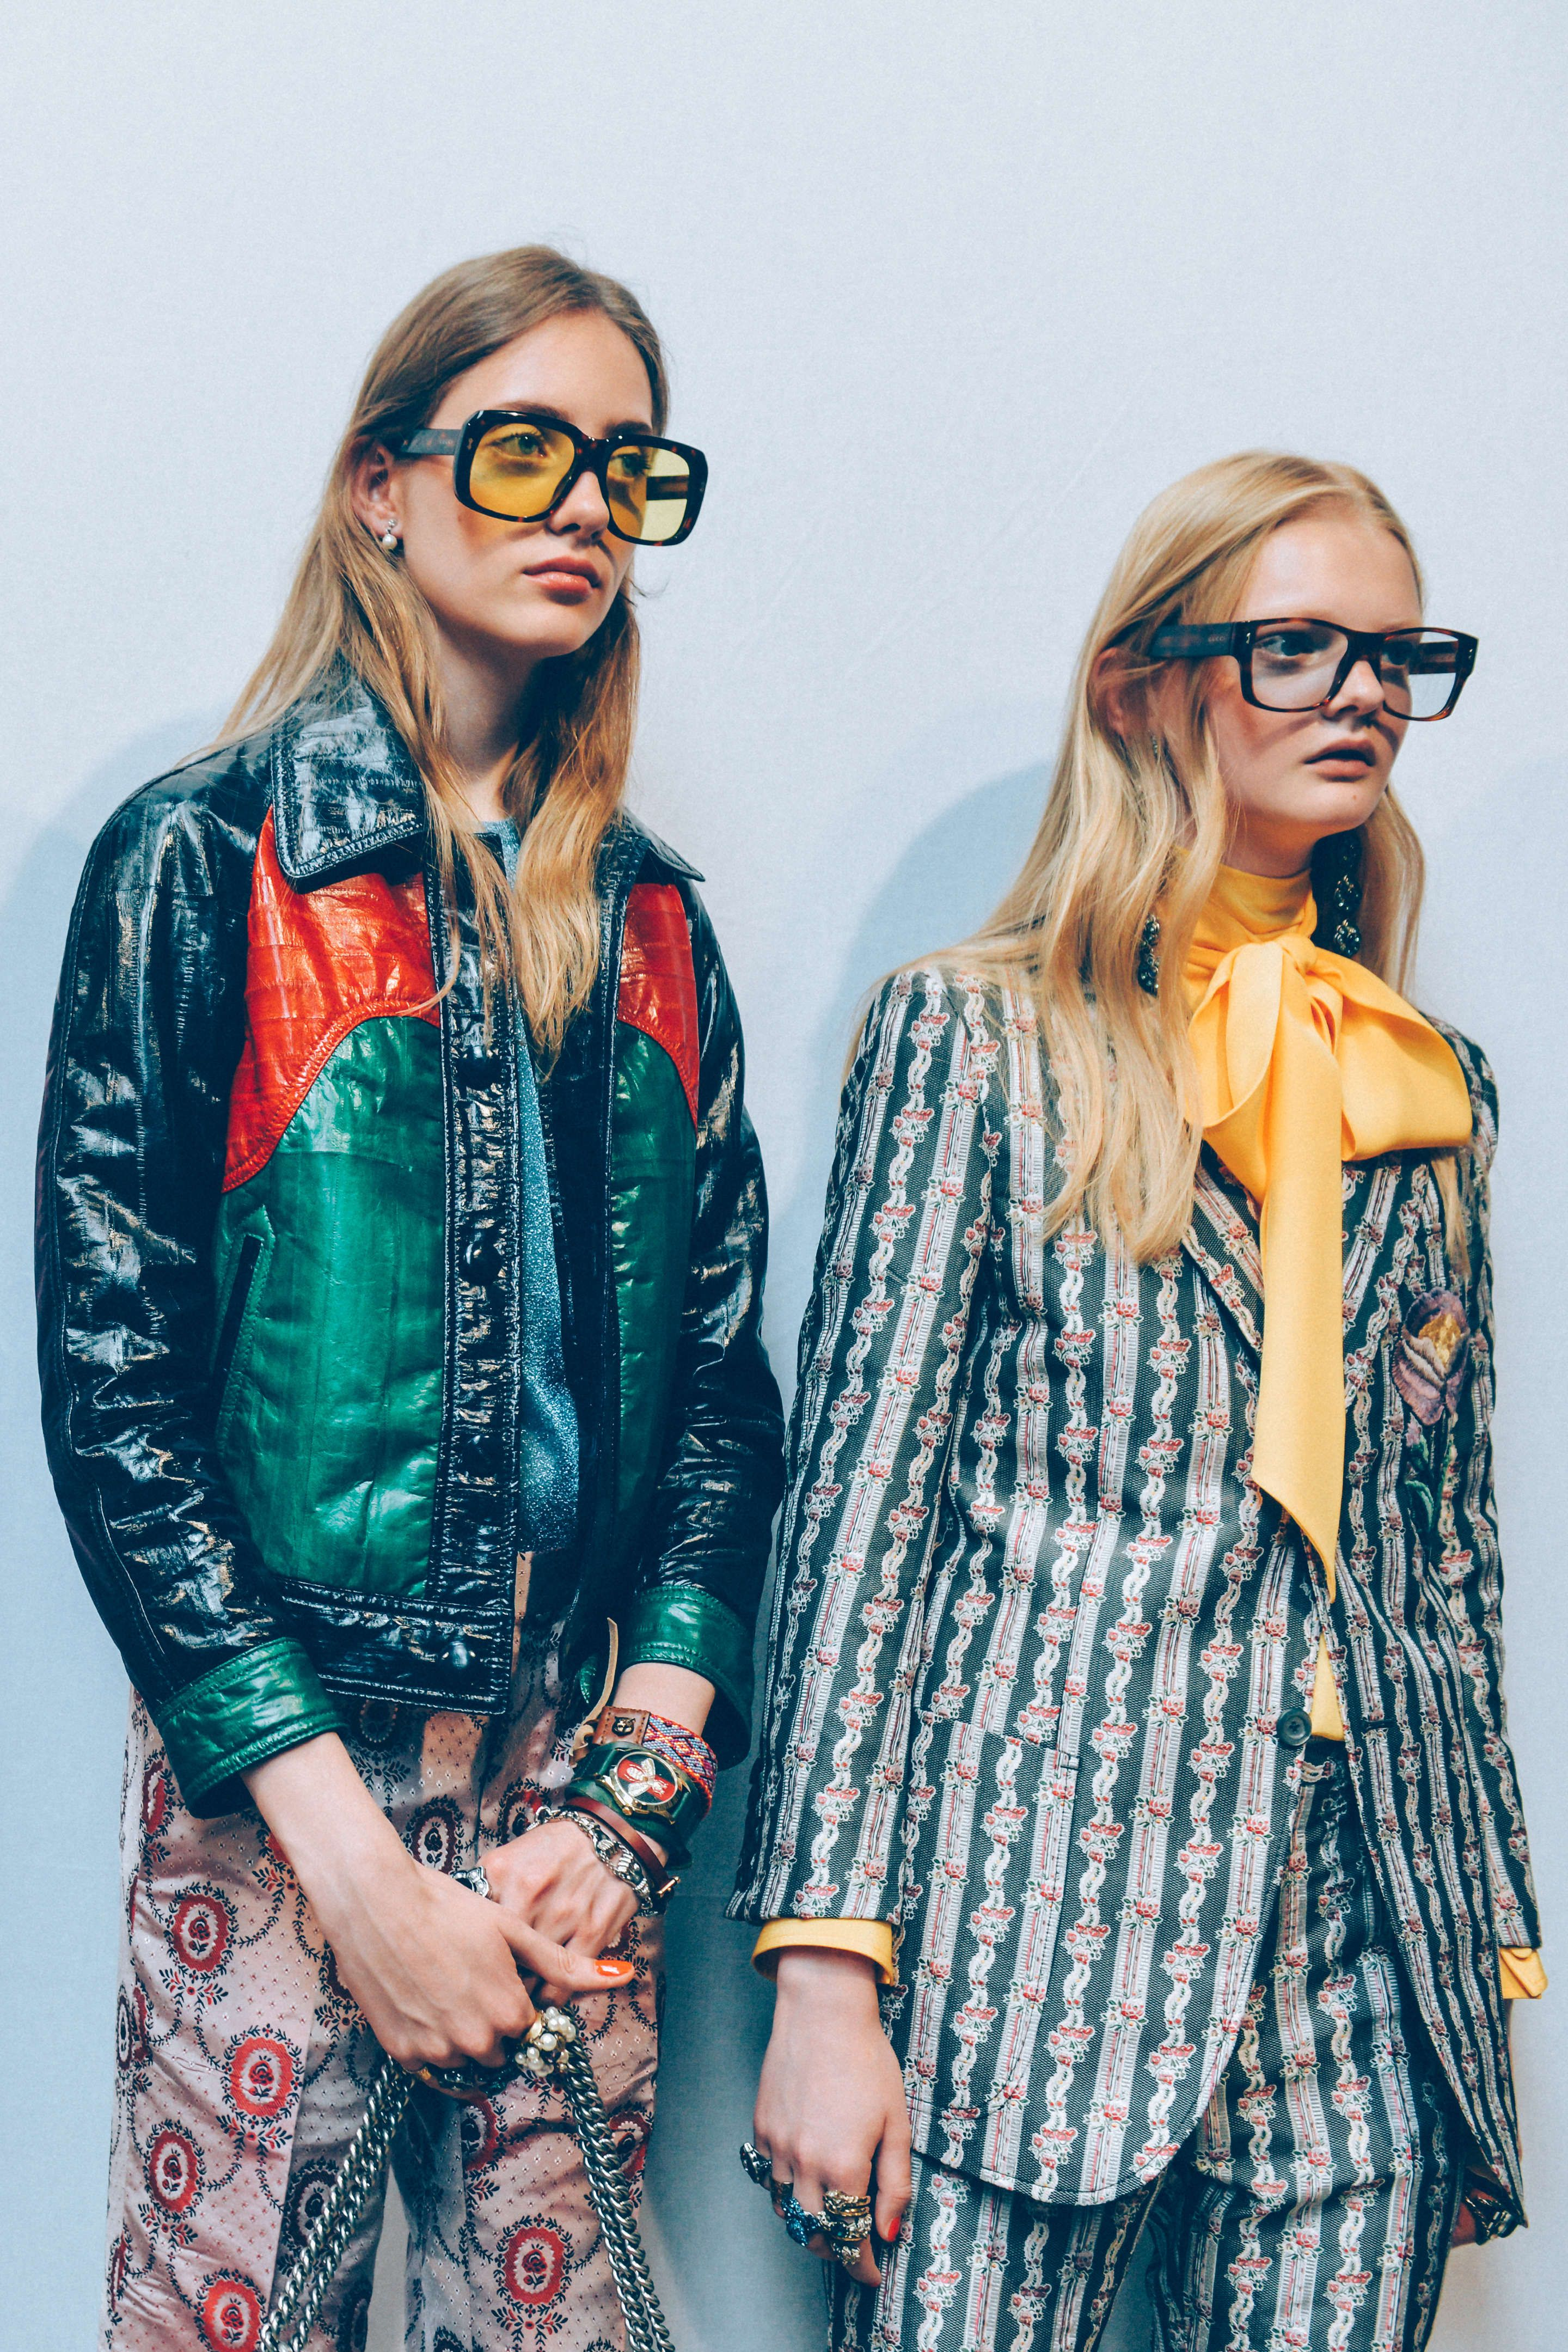 205714ee65be7 Tommy Ton - GUCCI MEN'S SPRING/SUMMER 2016 | fashionista | Fashion ...